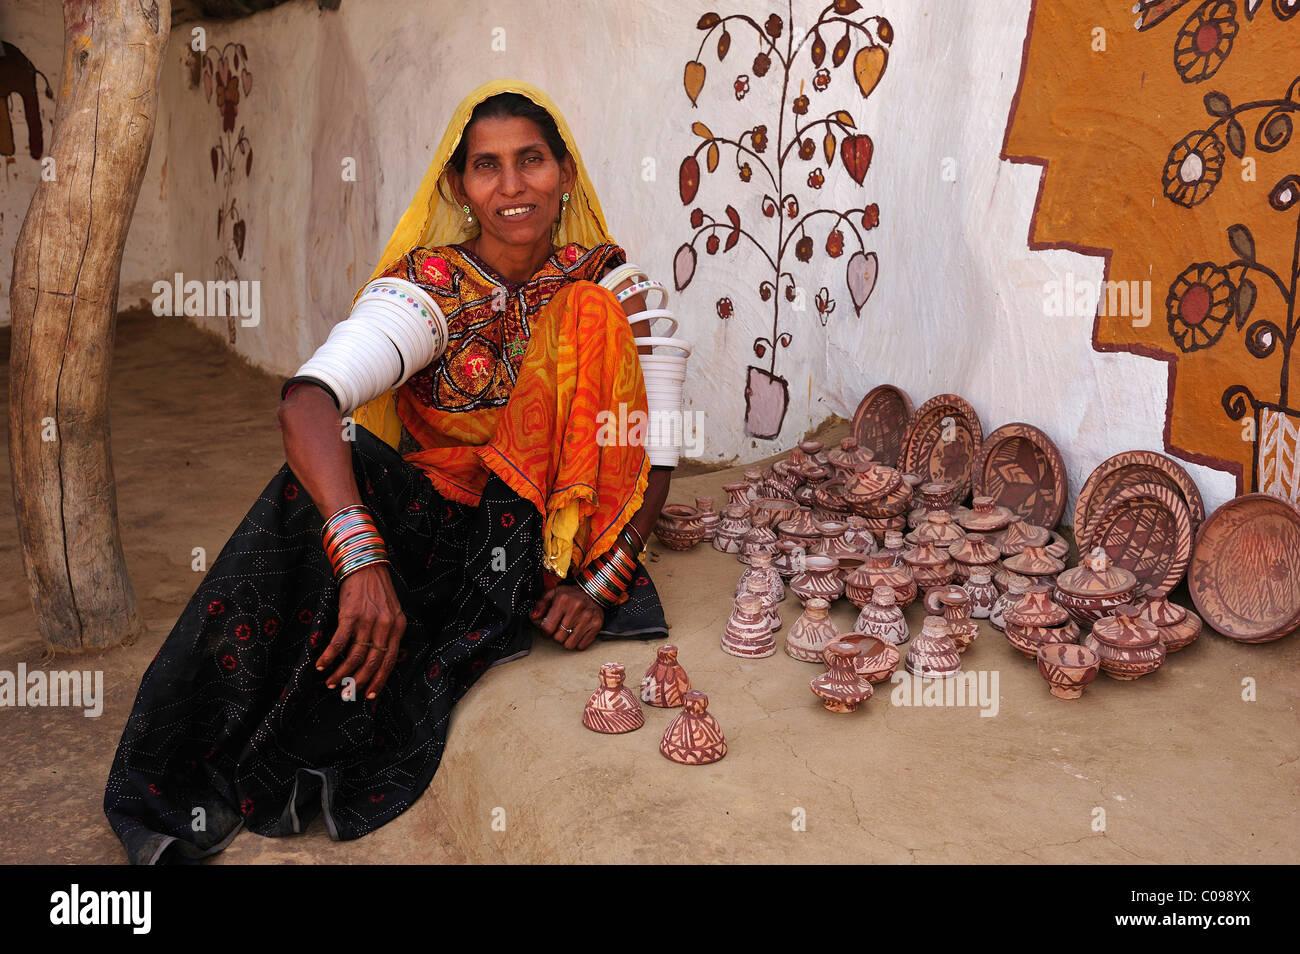 Female potter sitting next to a selection of ceramics in front of a traditional house, Thar Desert, Rajasthan, India, - Stock Image